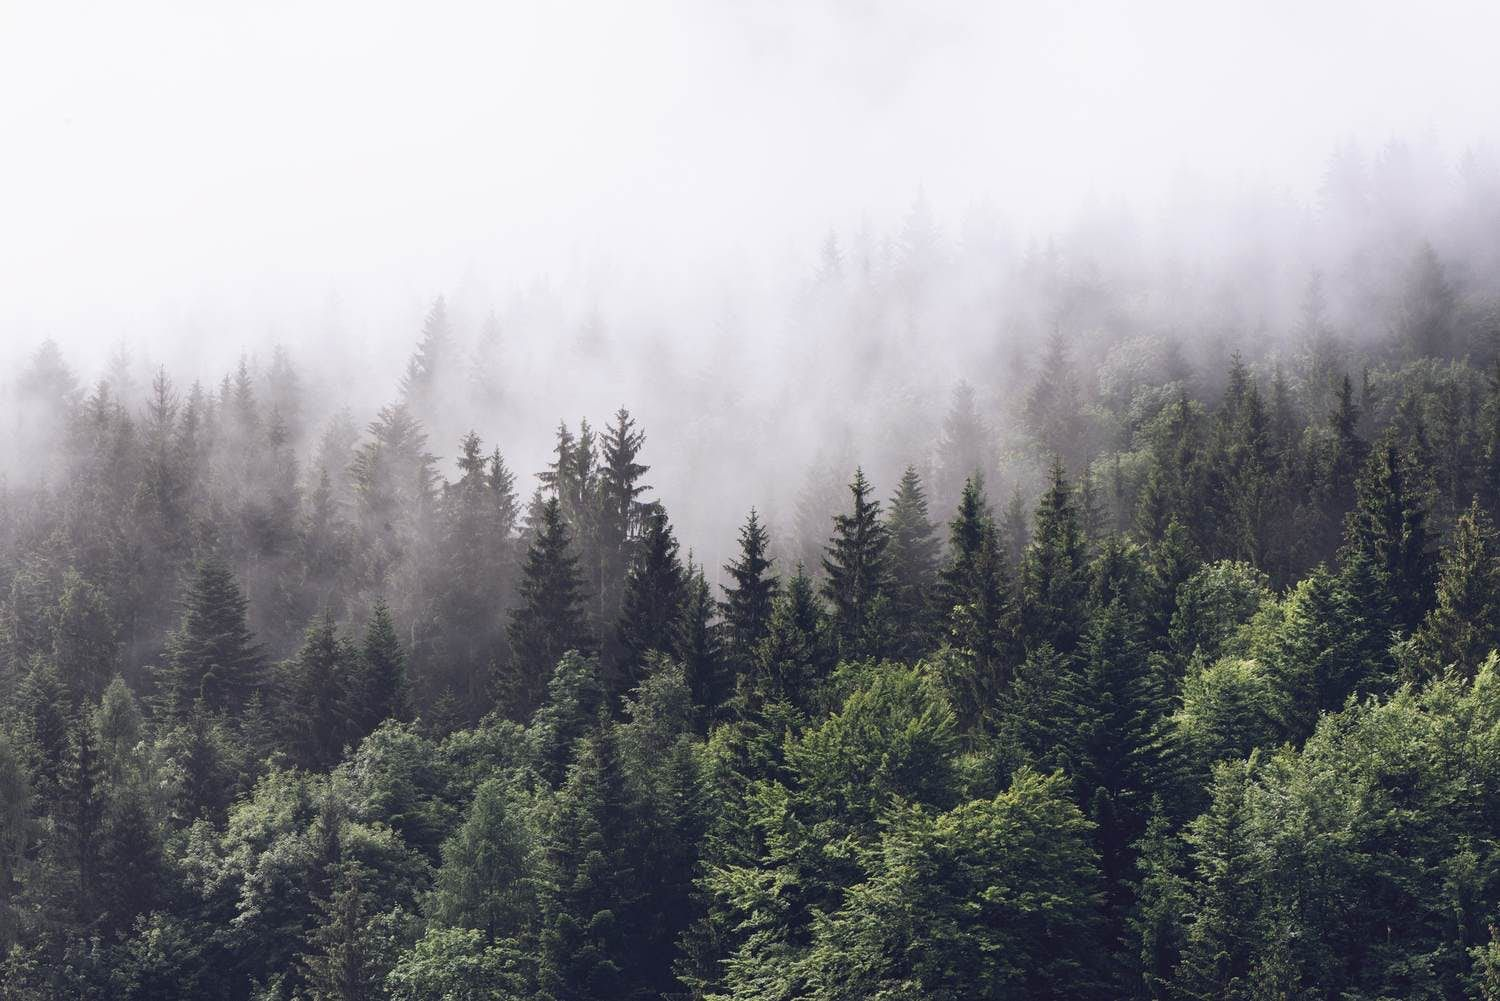 Cloudy forest Wall mural in 2020 Forest wallpaper, Misty